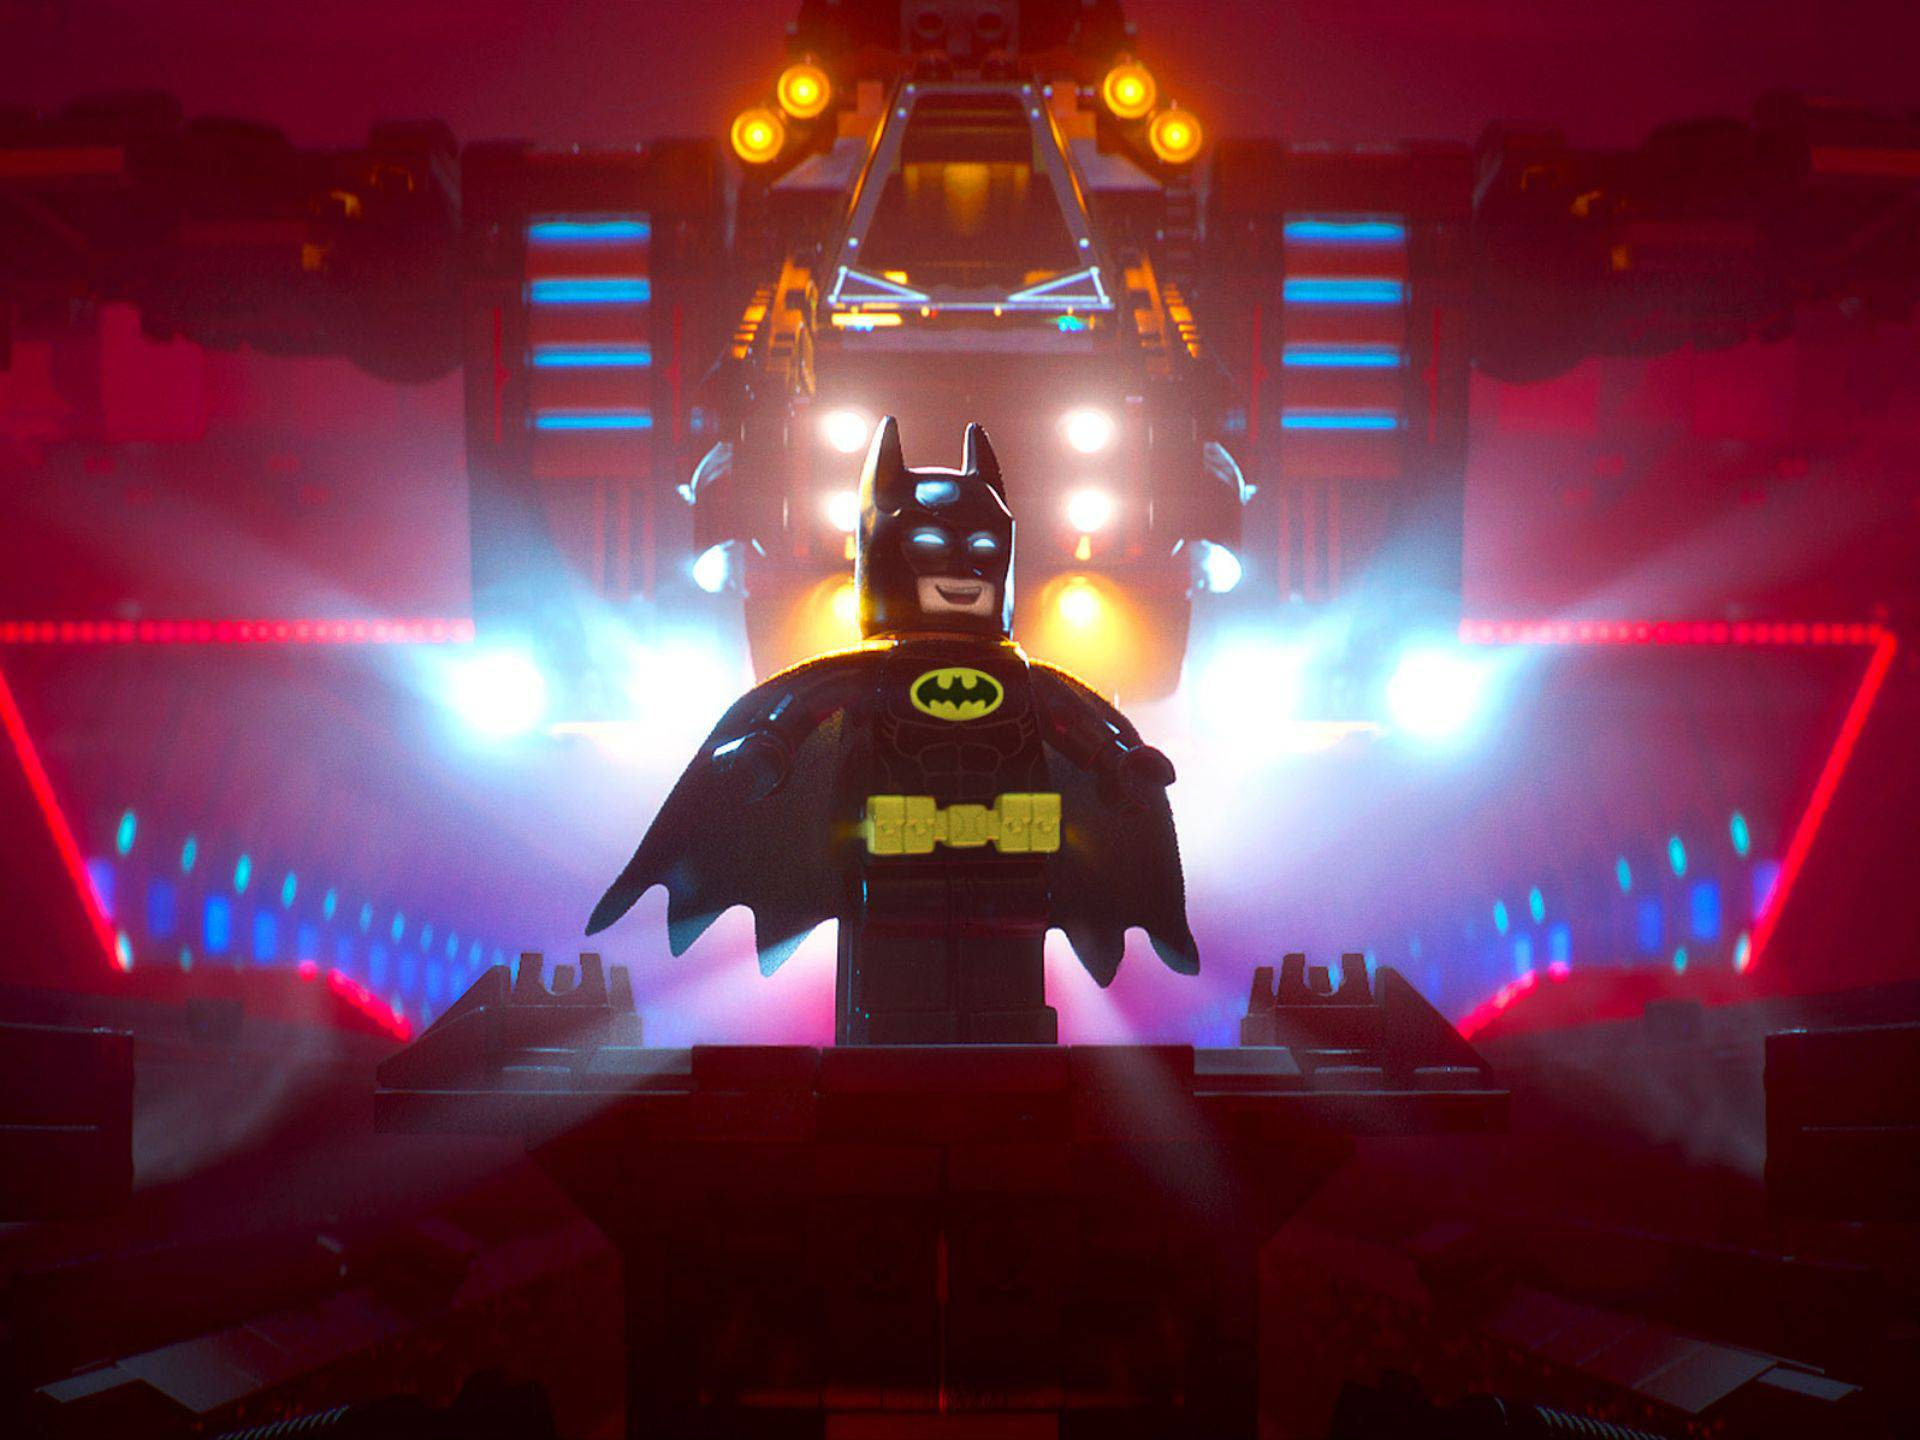 New LEGO Batman Movie Images + Trailer Coming This Week